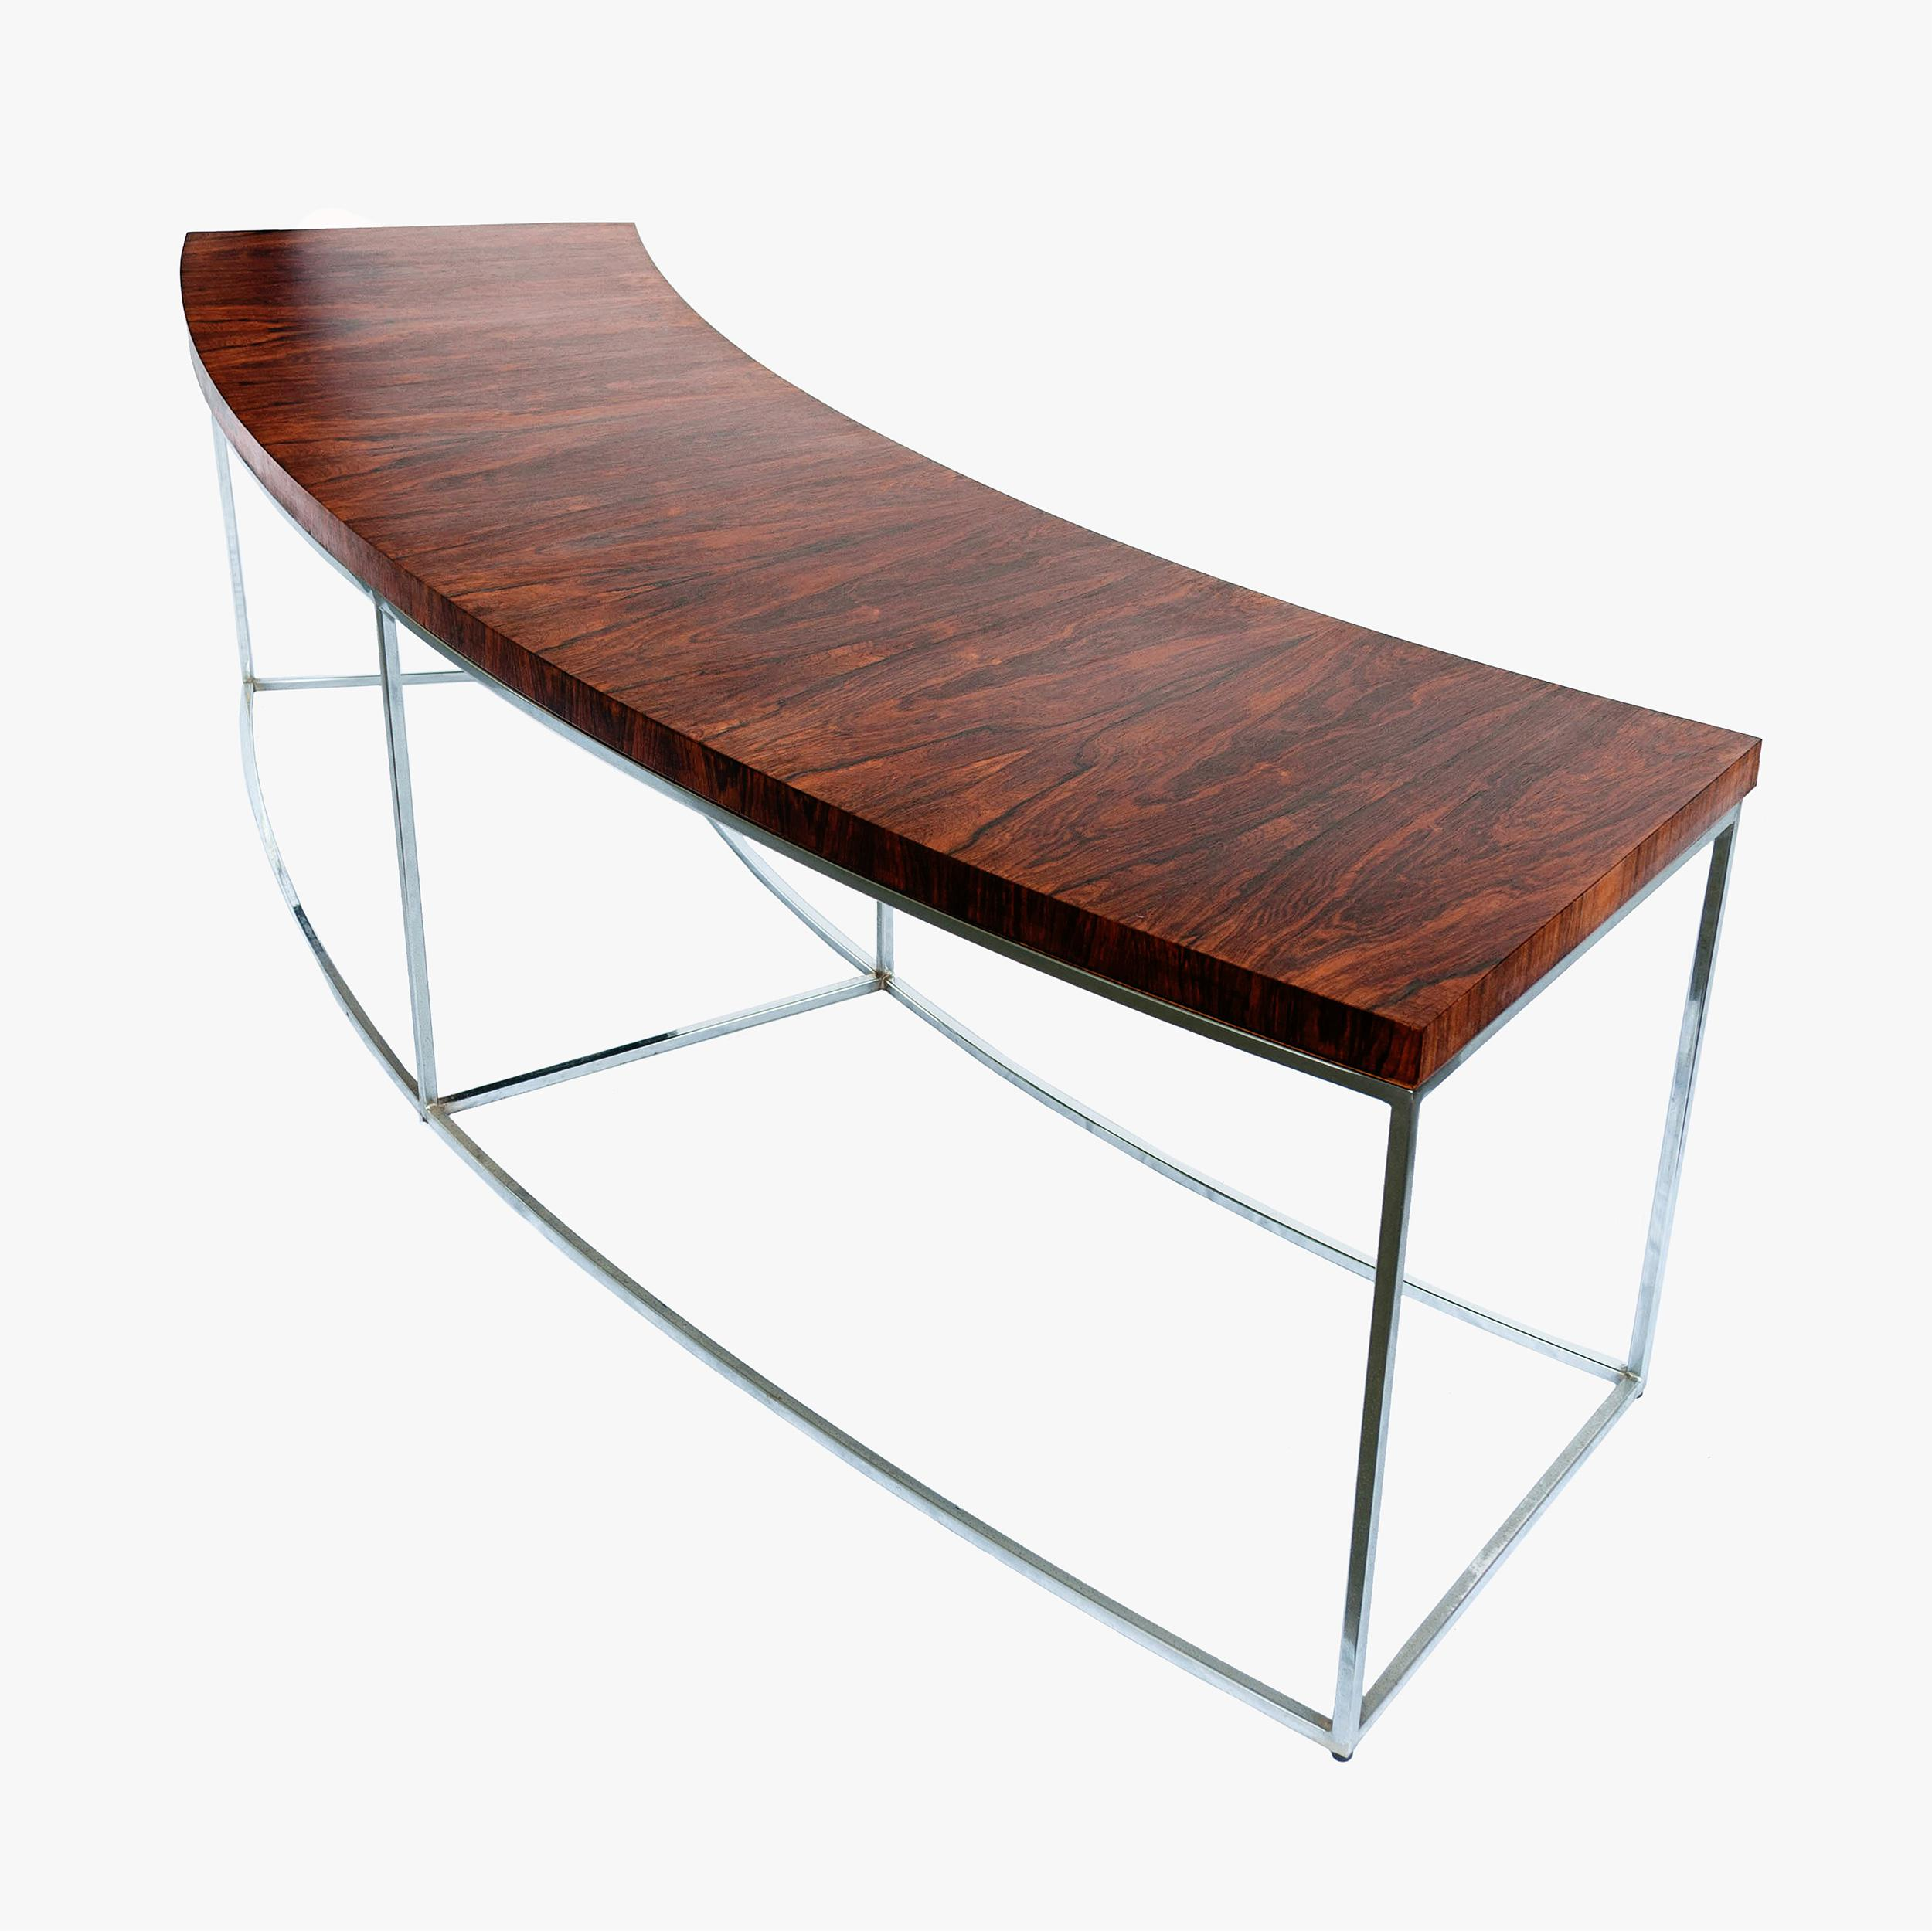 Authentic Rosewood And Chrome Curved Sofa Table Designed By Milo Baughman  For Thayer Coggin. The